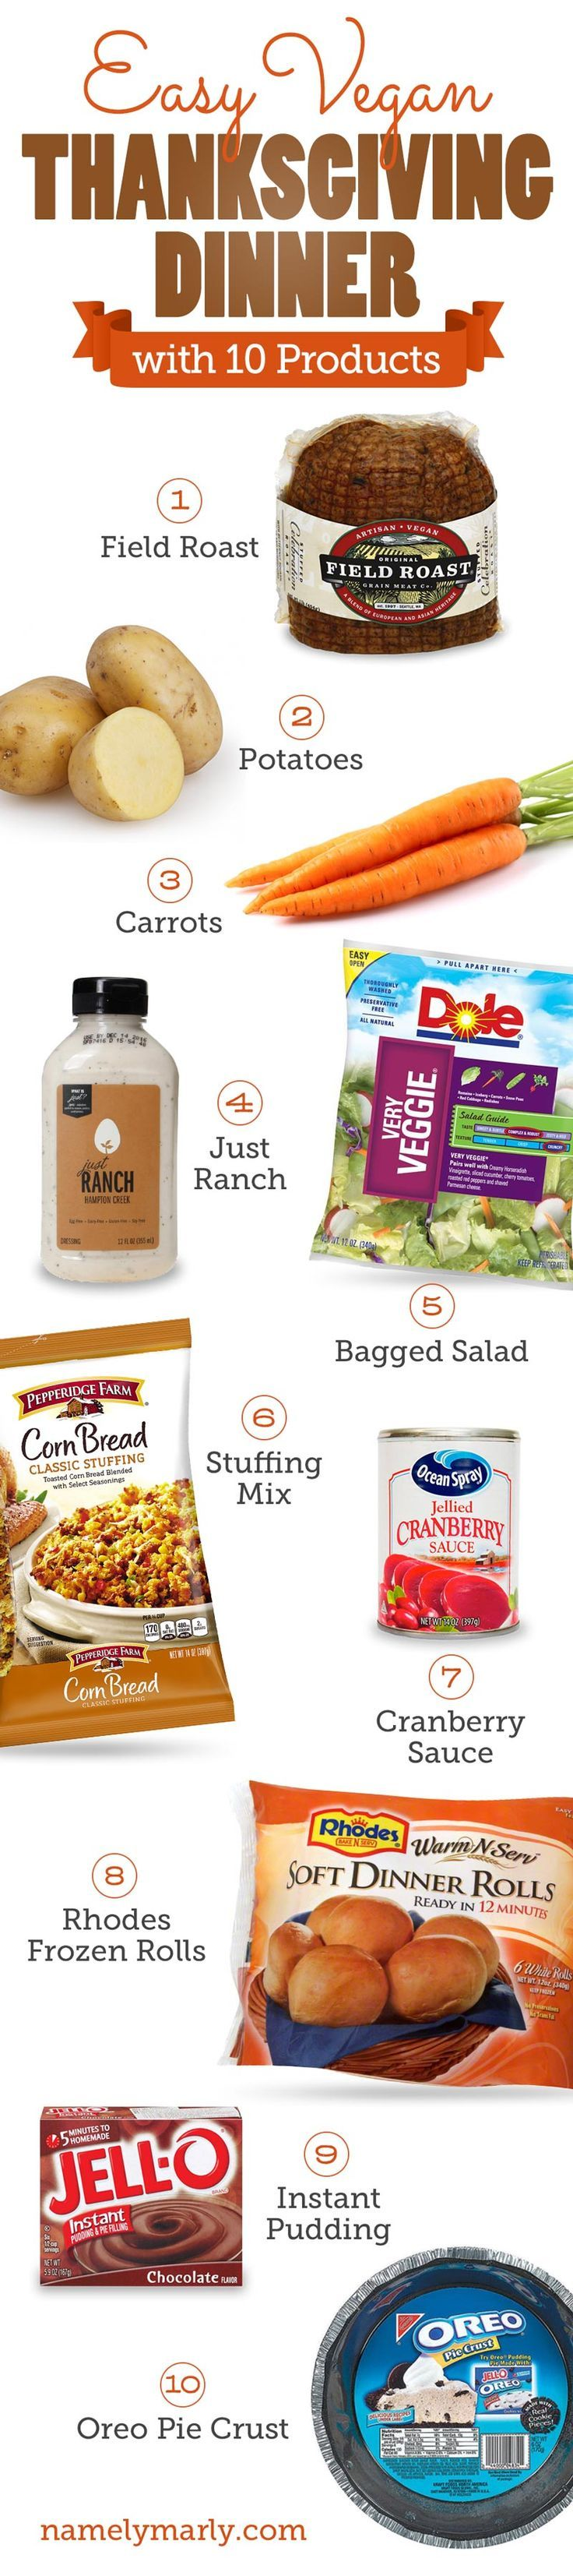 Easy Vegan Thanksgiving Dinner with 10 Products is a resource to create your easy vegan thanksgiving dinner with minimal steps and lots of flavor!